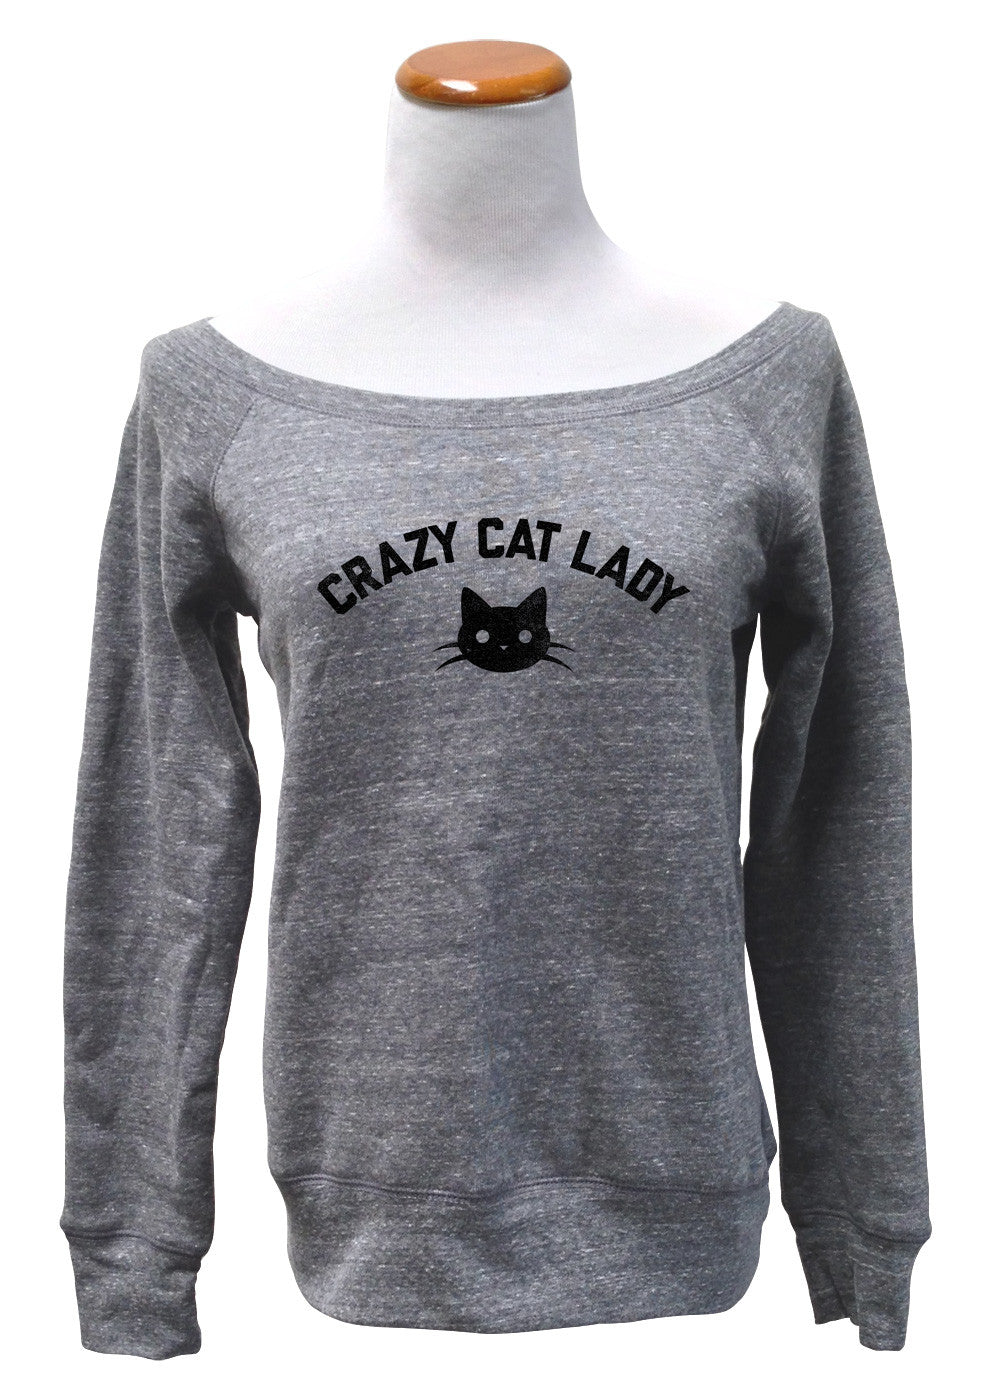 Women's Team Crazy Cat Lady Scoop Neck Fleece